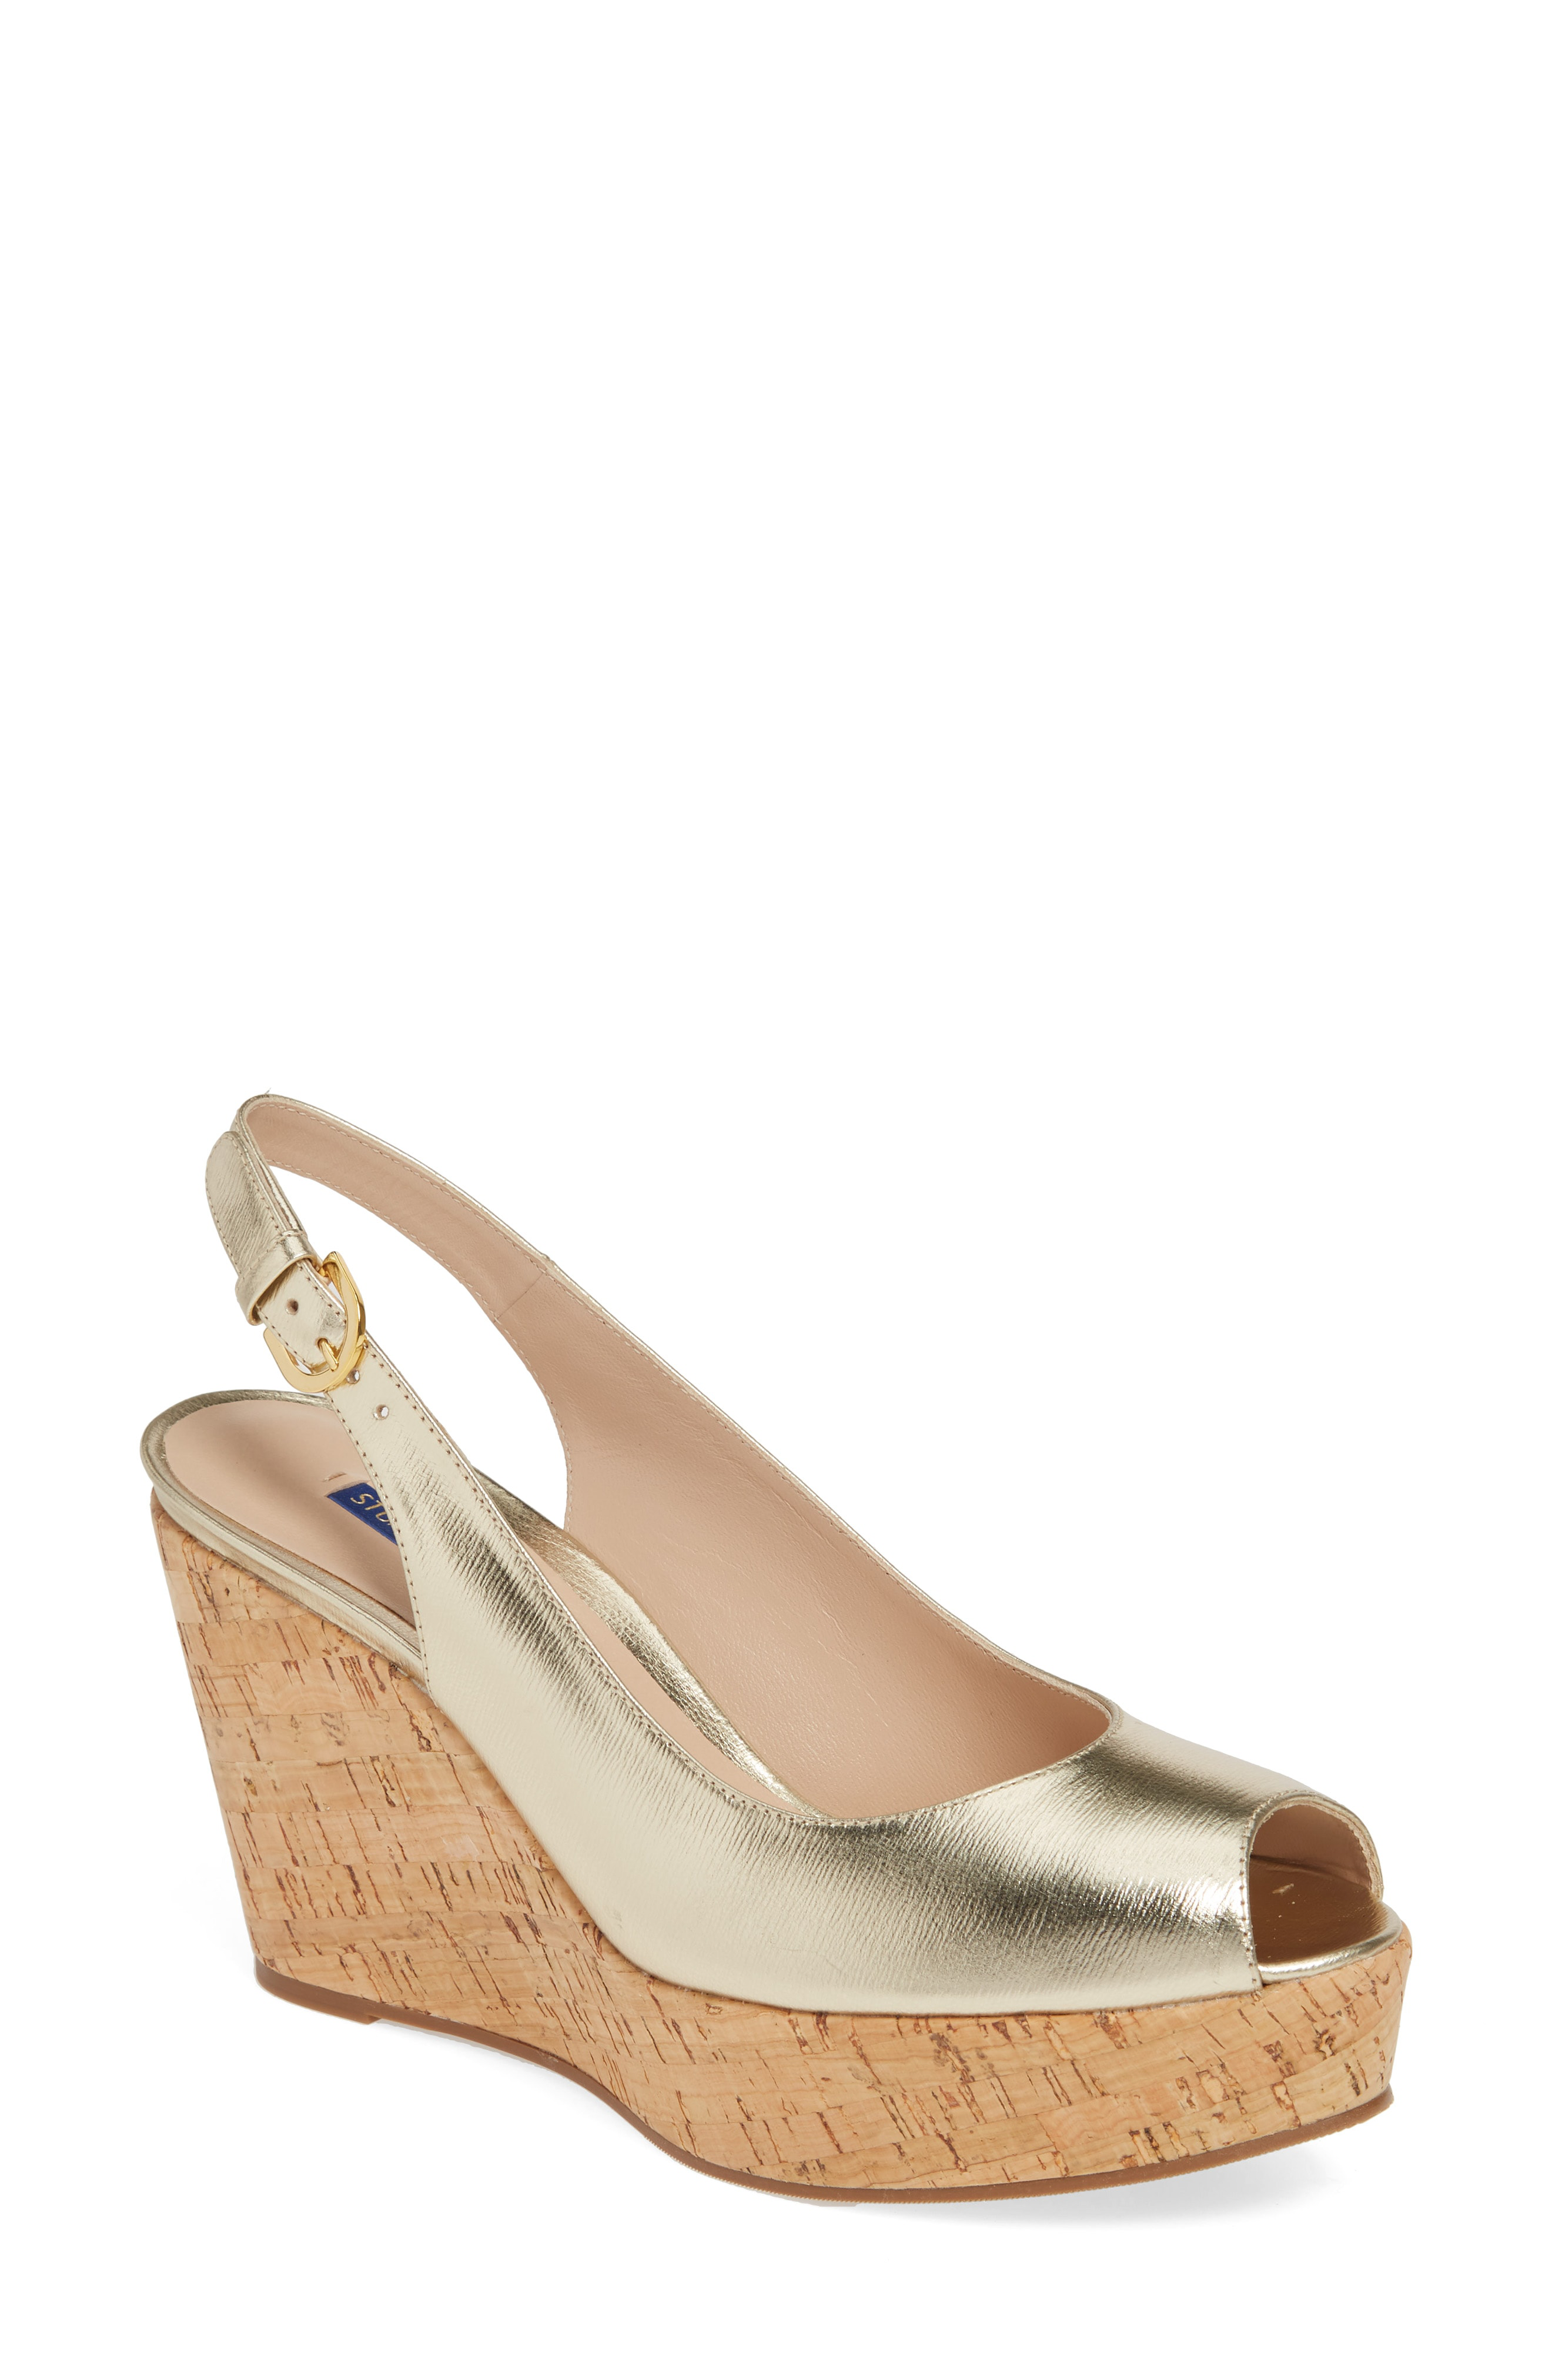 fc2d649c6fe Stitched trim tops the chunky cork wedge of a slingback fashioned with a  flirty peep toe. Stuart Weitzman shoes are favorites among editors